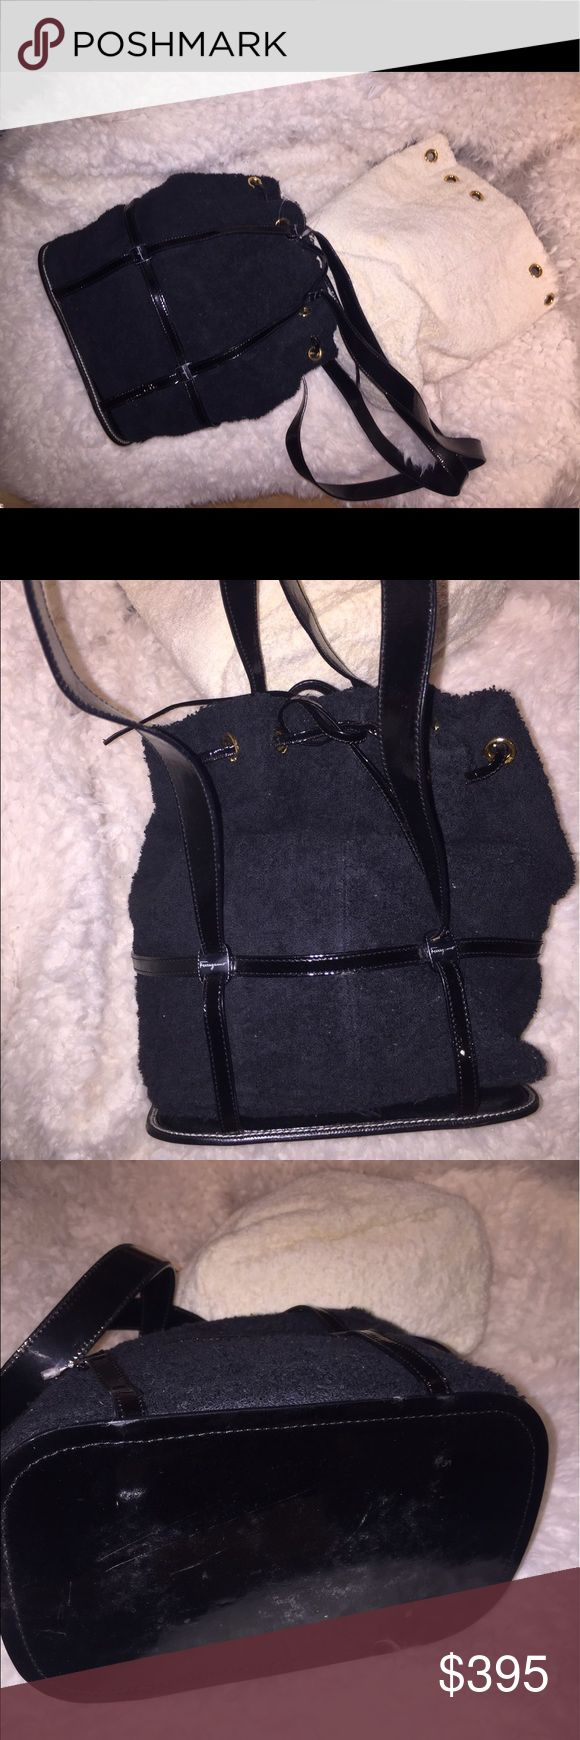 Ferragamo black & white towel material bag Used but in good condition. Comes with both black and white bags that can be interchanged. Can be worn in multiple ways including shoulder bag, bucket bag, and backpack. Ferragamo Bags